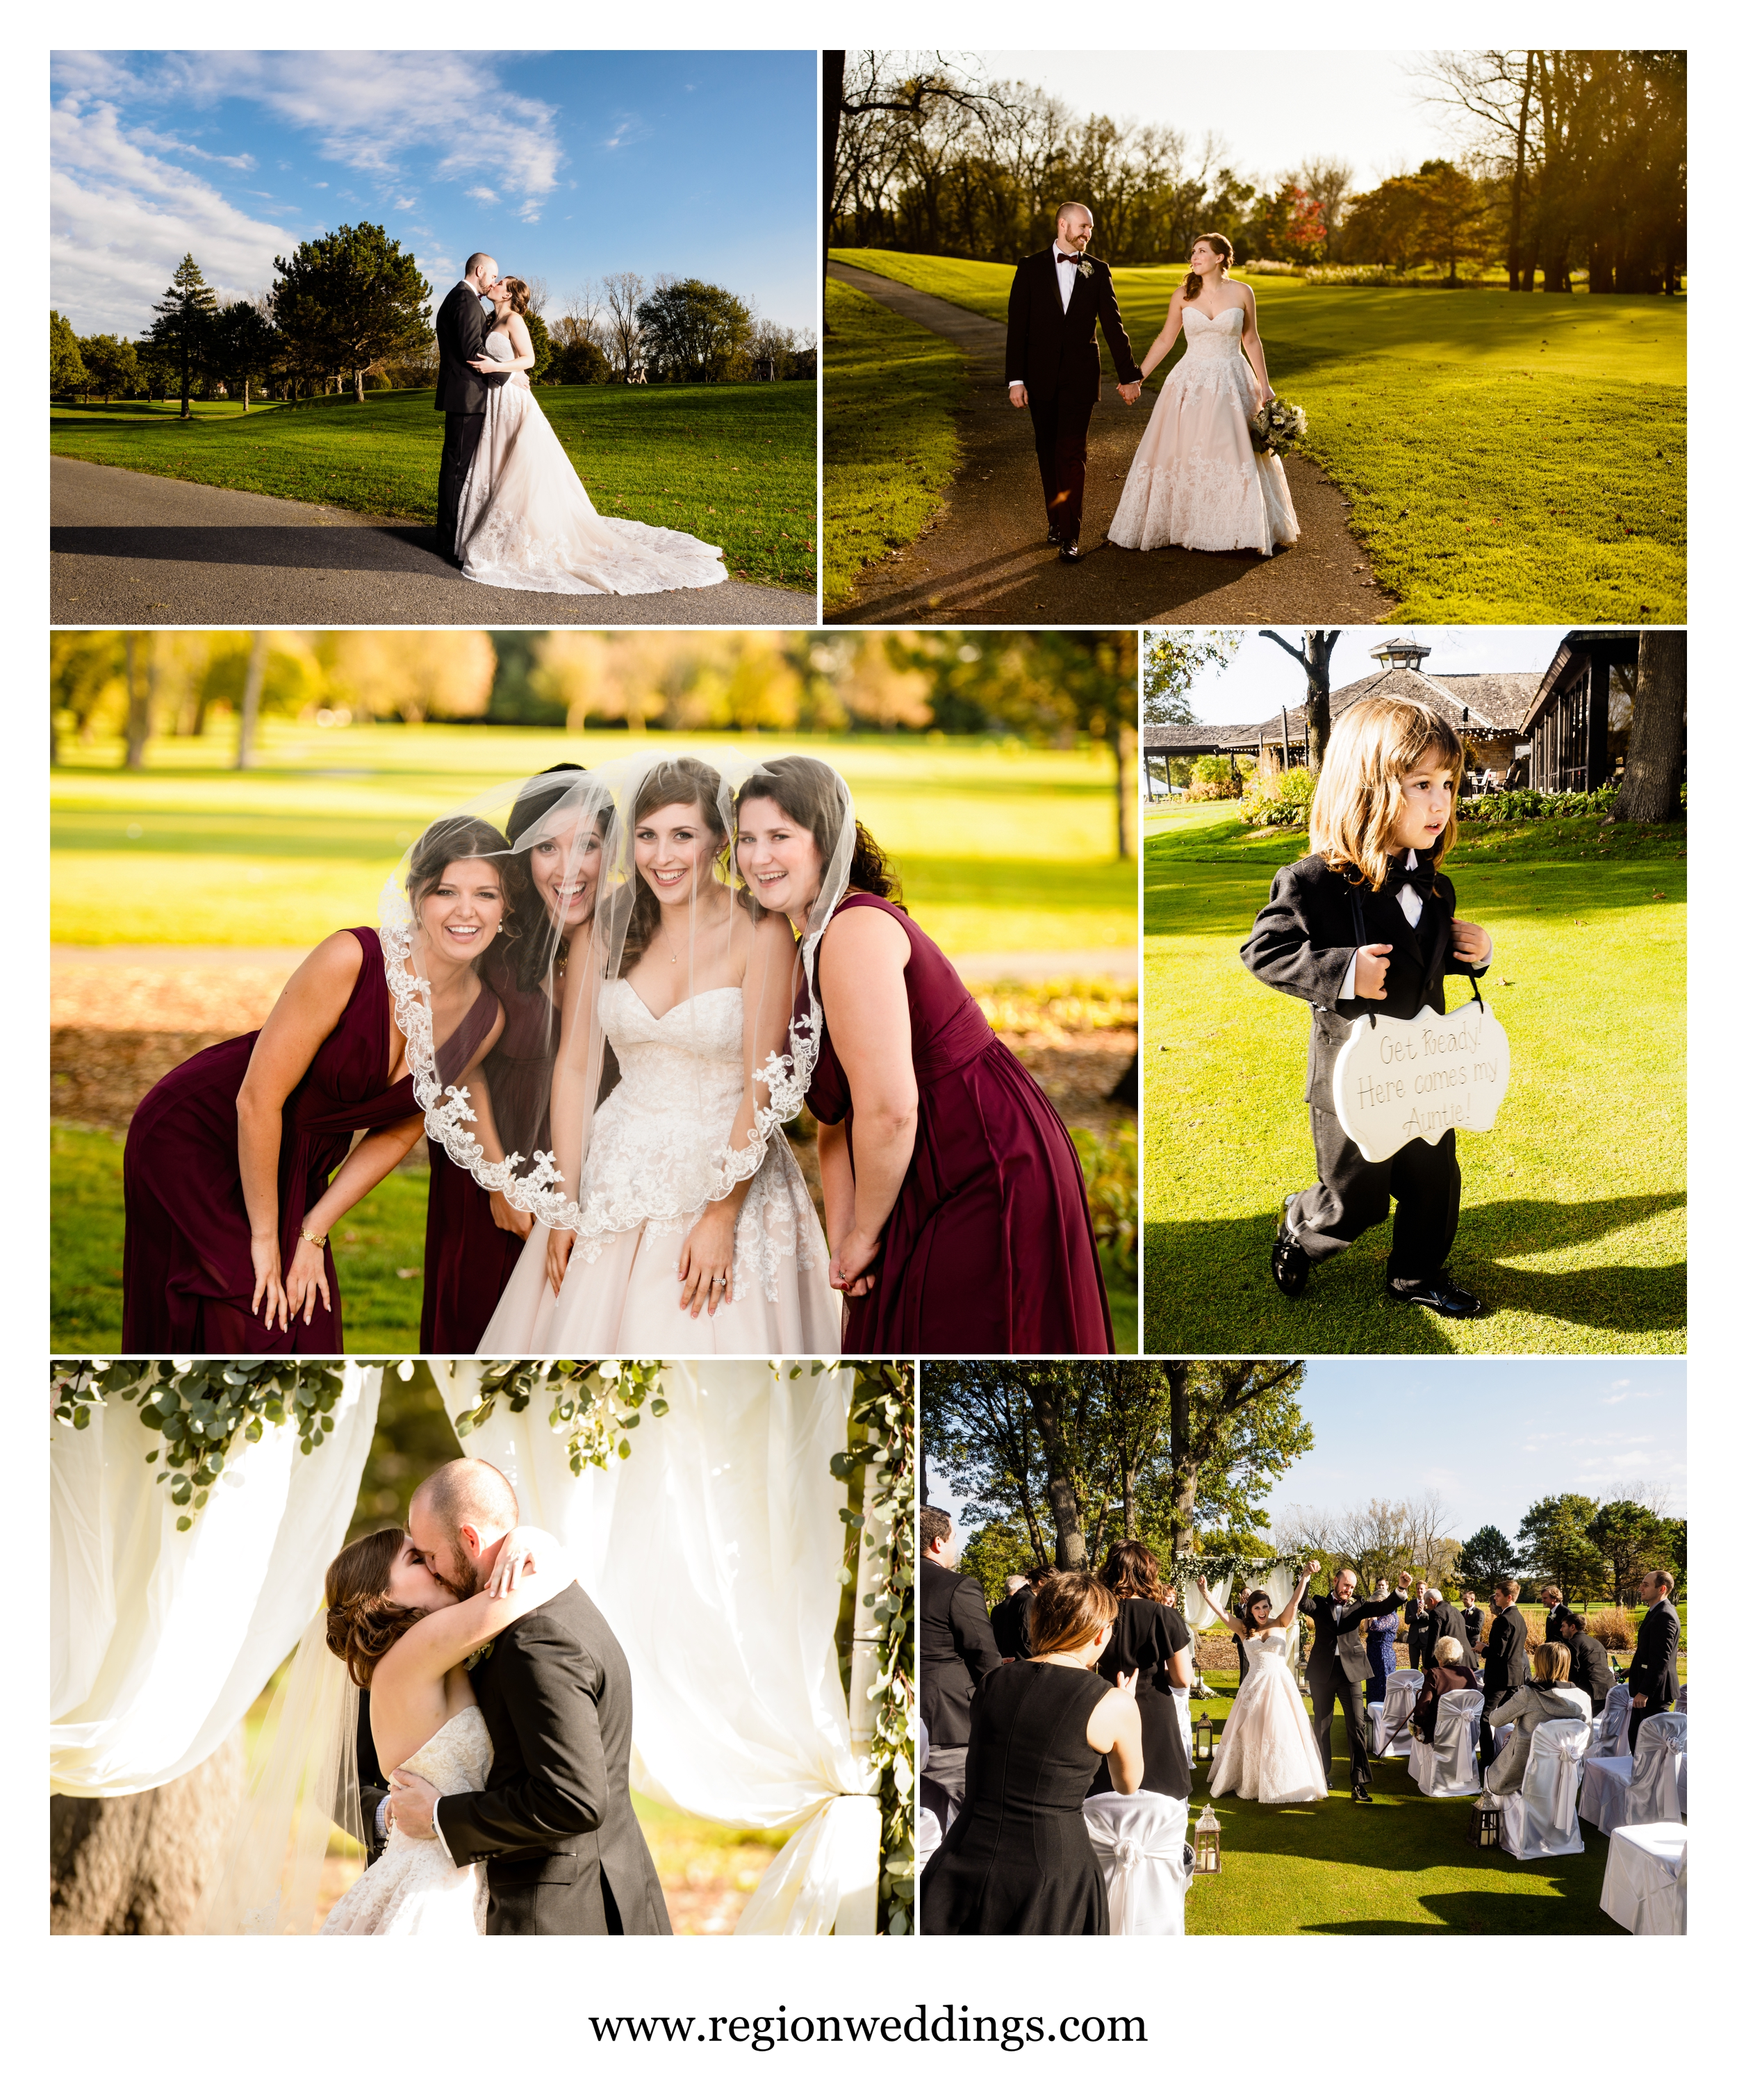 Fun outdoor wedding ceremony photos at Briar Ridge Country Club.